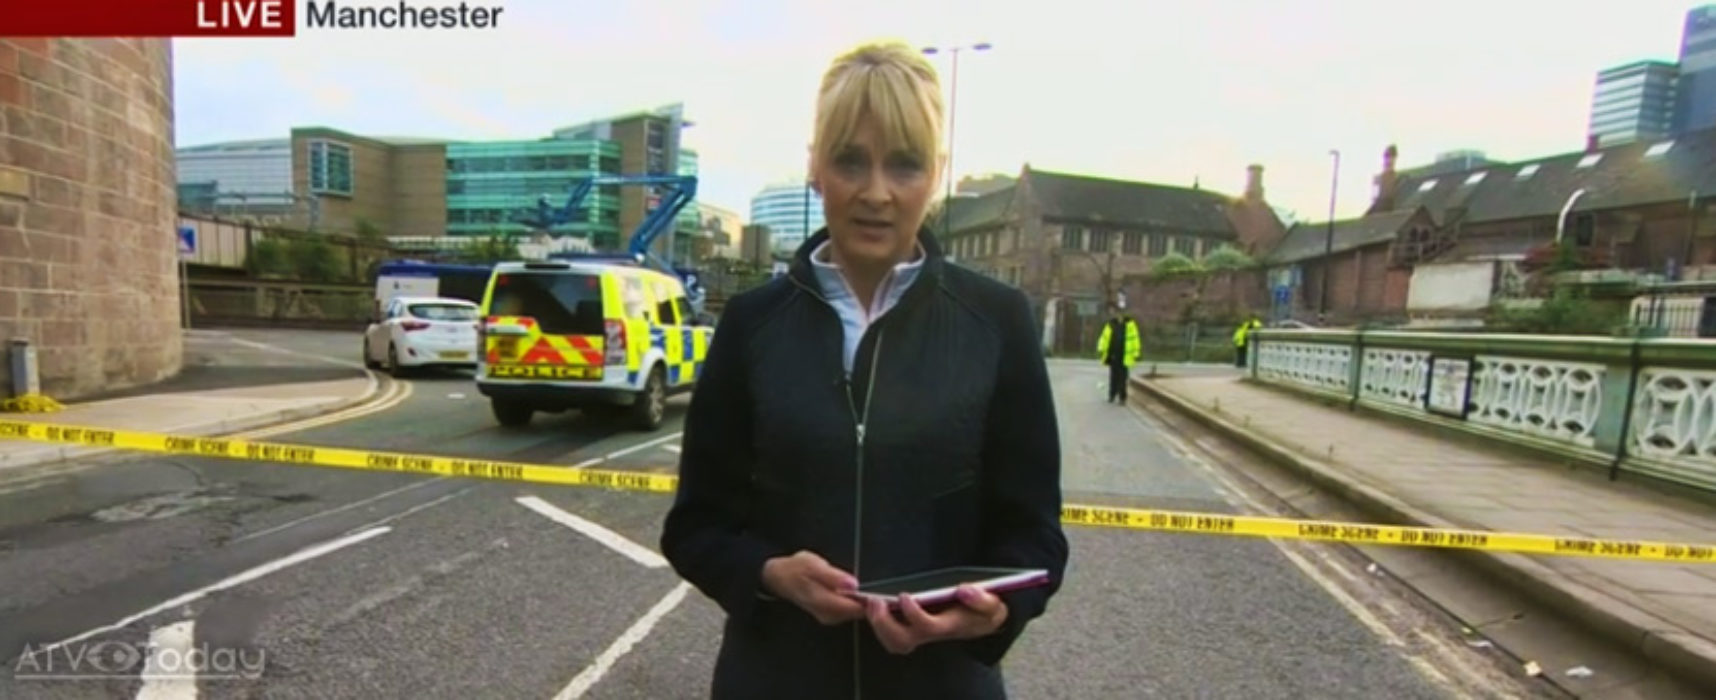 BBC and ITV amend schedules for Manchester Arena blast coverage